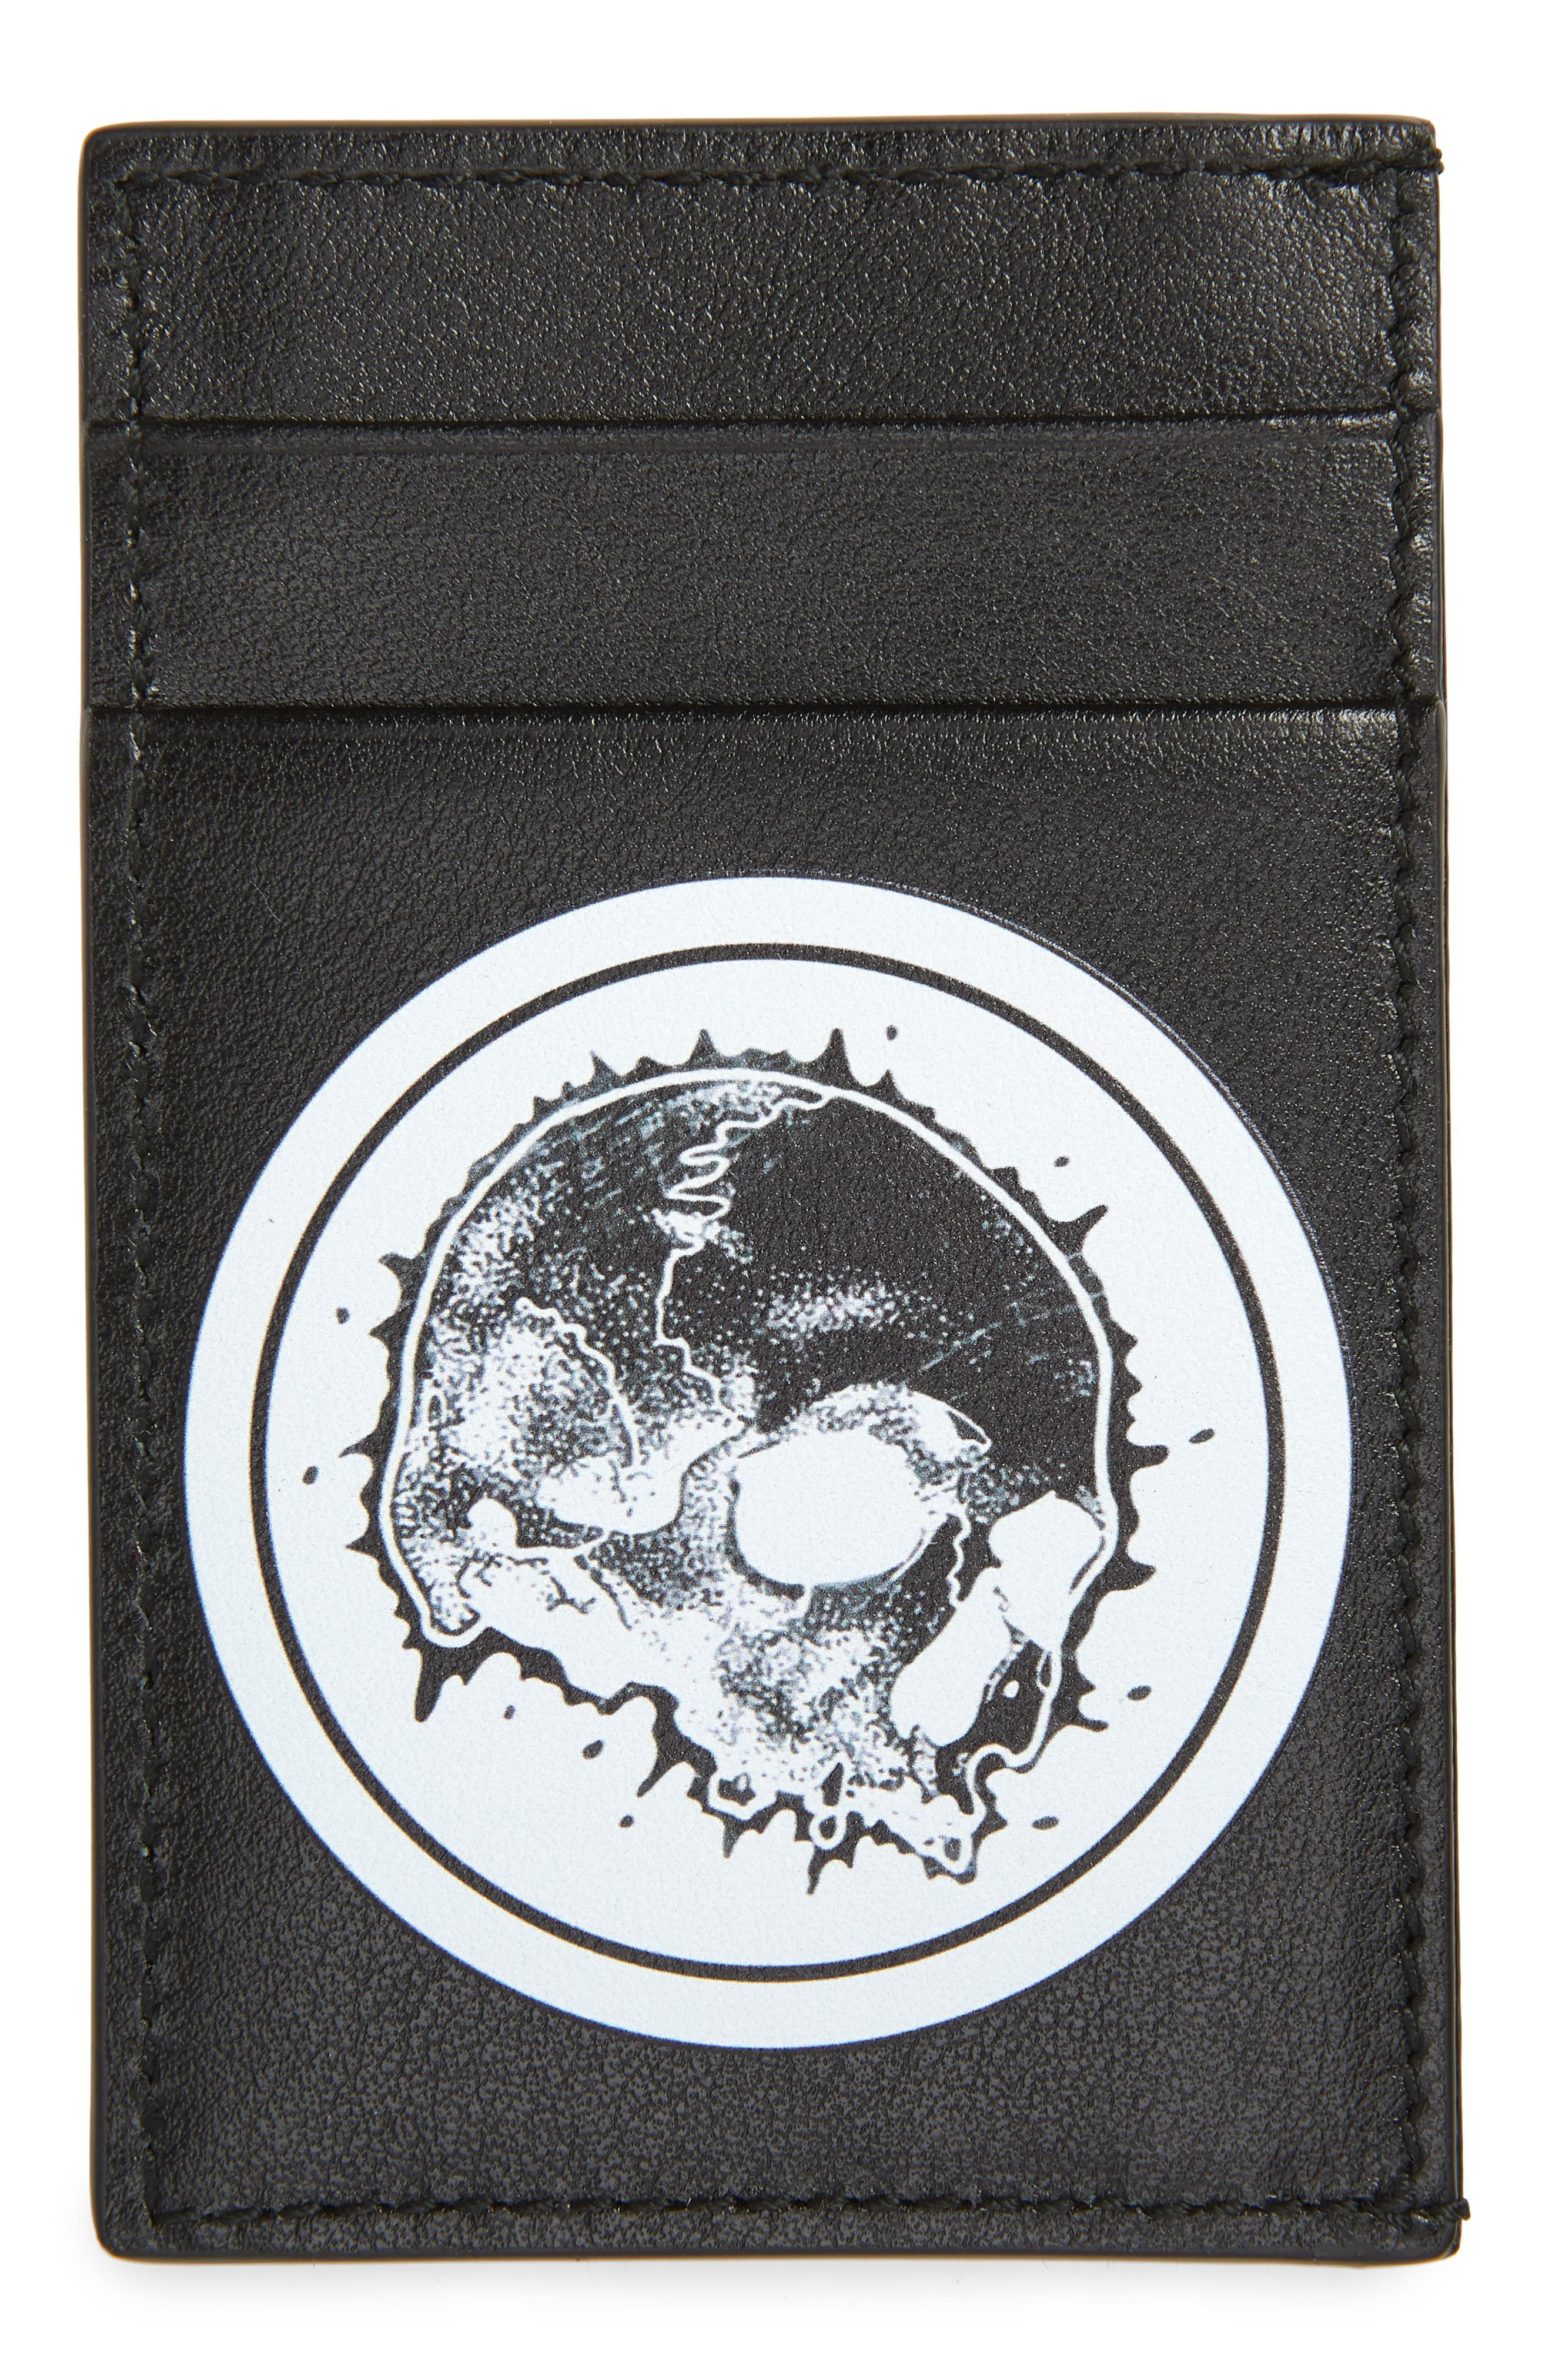 newest badcf 4a851 Men's Alexander Mcqueen Skull Leather Card Case - Black | Products ...